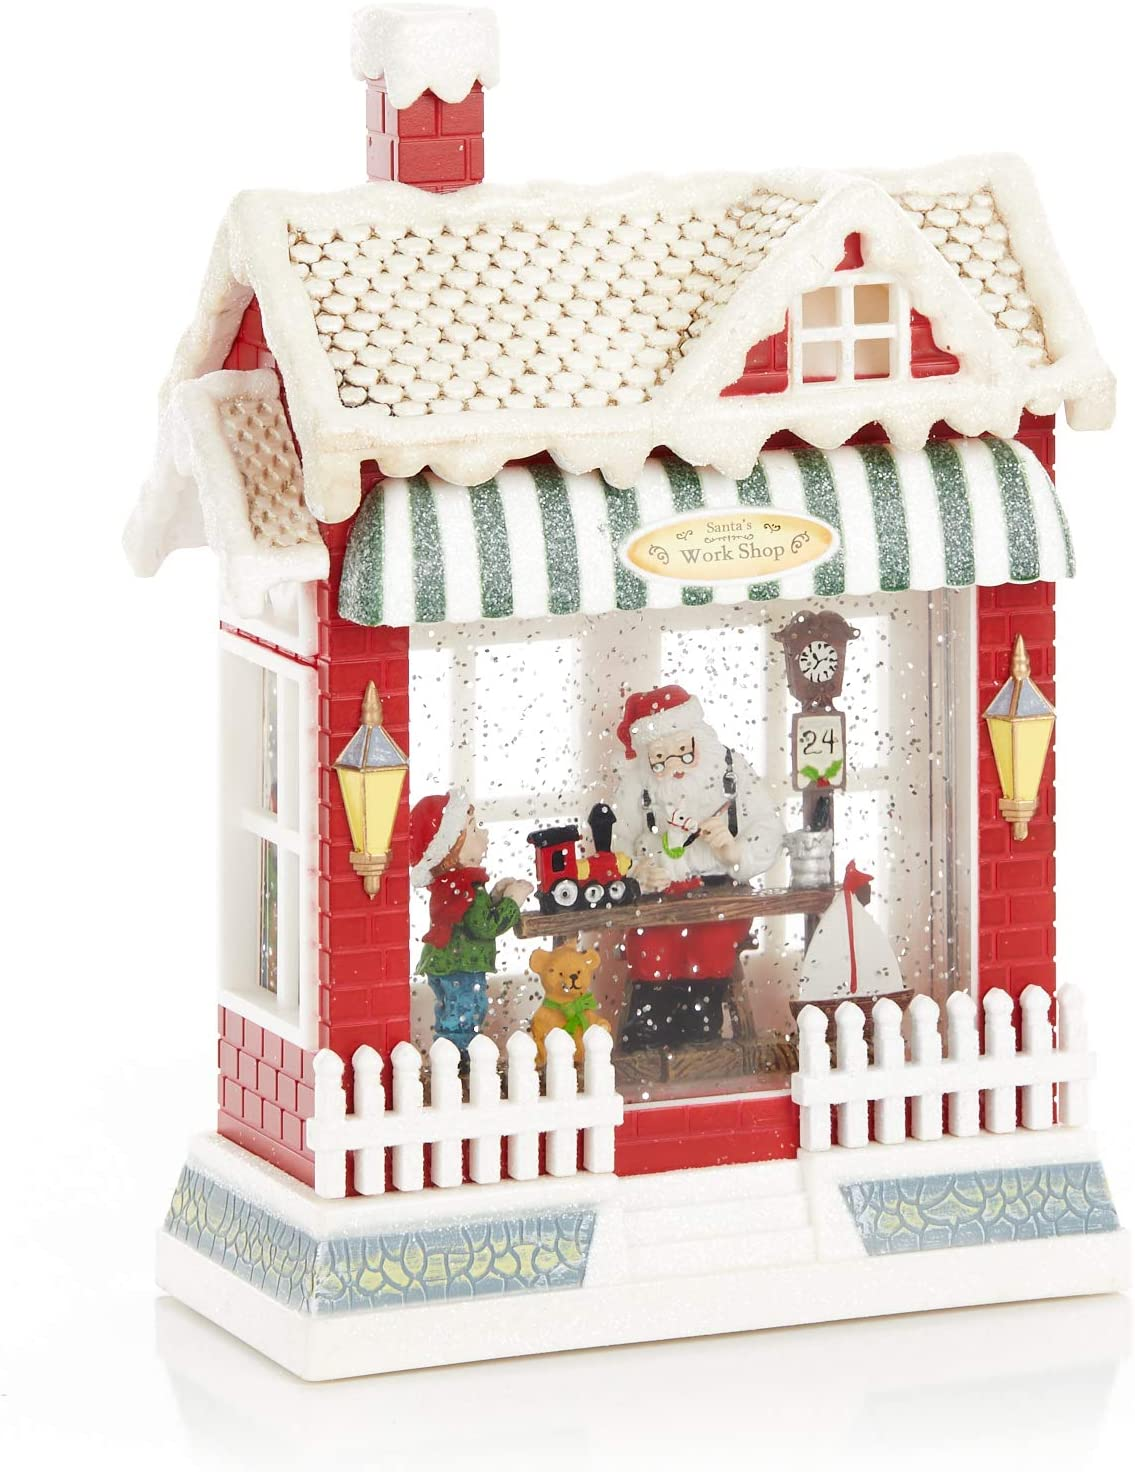 ReLIVE Christmas Light-Up Nippon regular agency Snow Globe Santa's - Indianapolis Mall Workshop